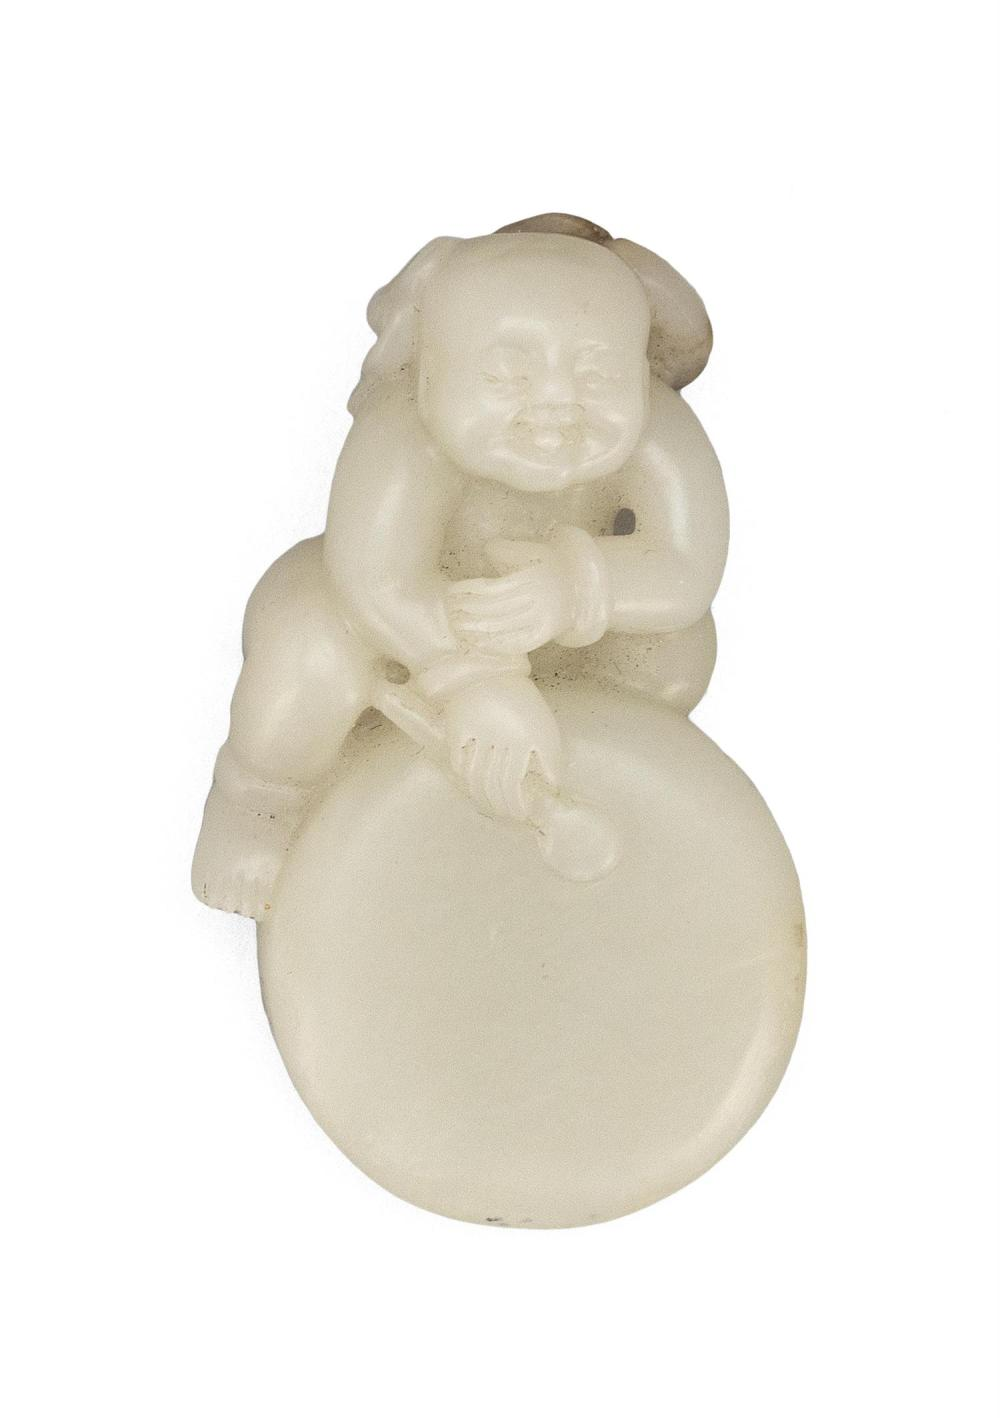 VERY RARE WHITE JADE CARVING OF THE IMMORTAL LIU HAI Resting on and beating a large drum, which calls to the immortal three-legged t...